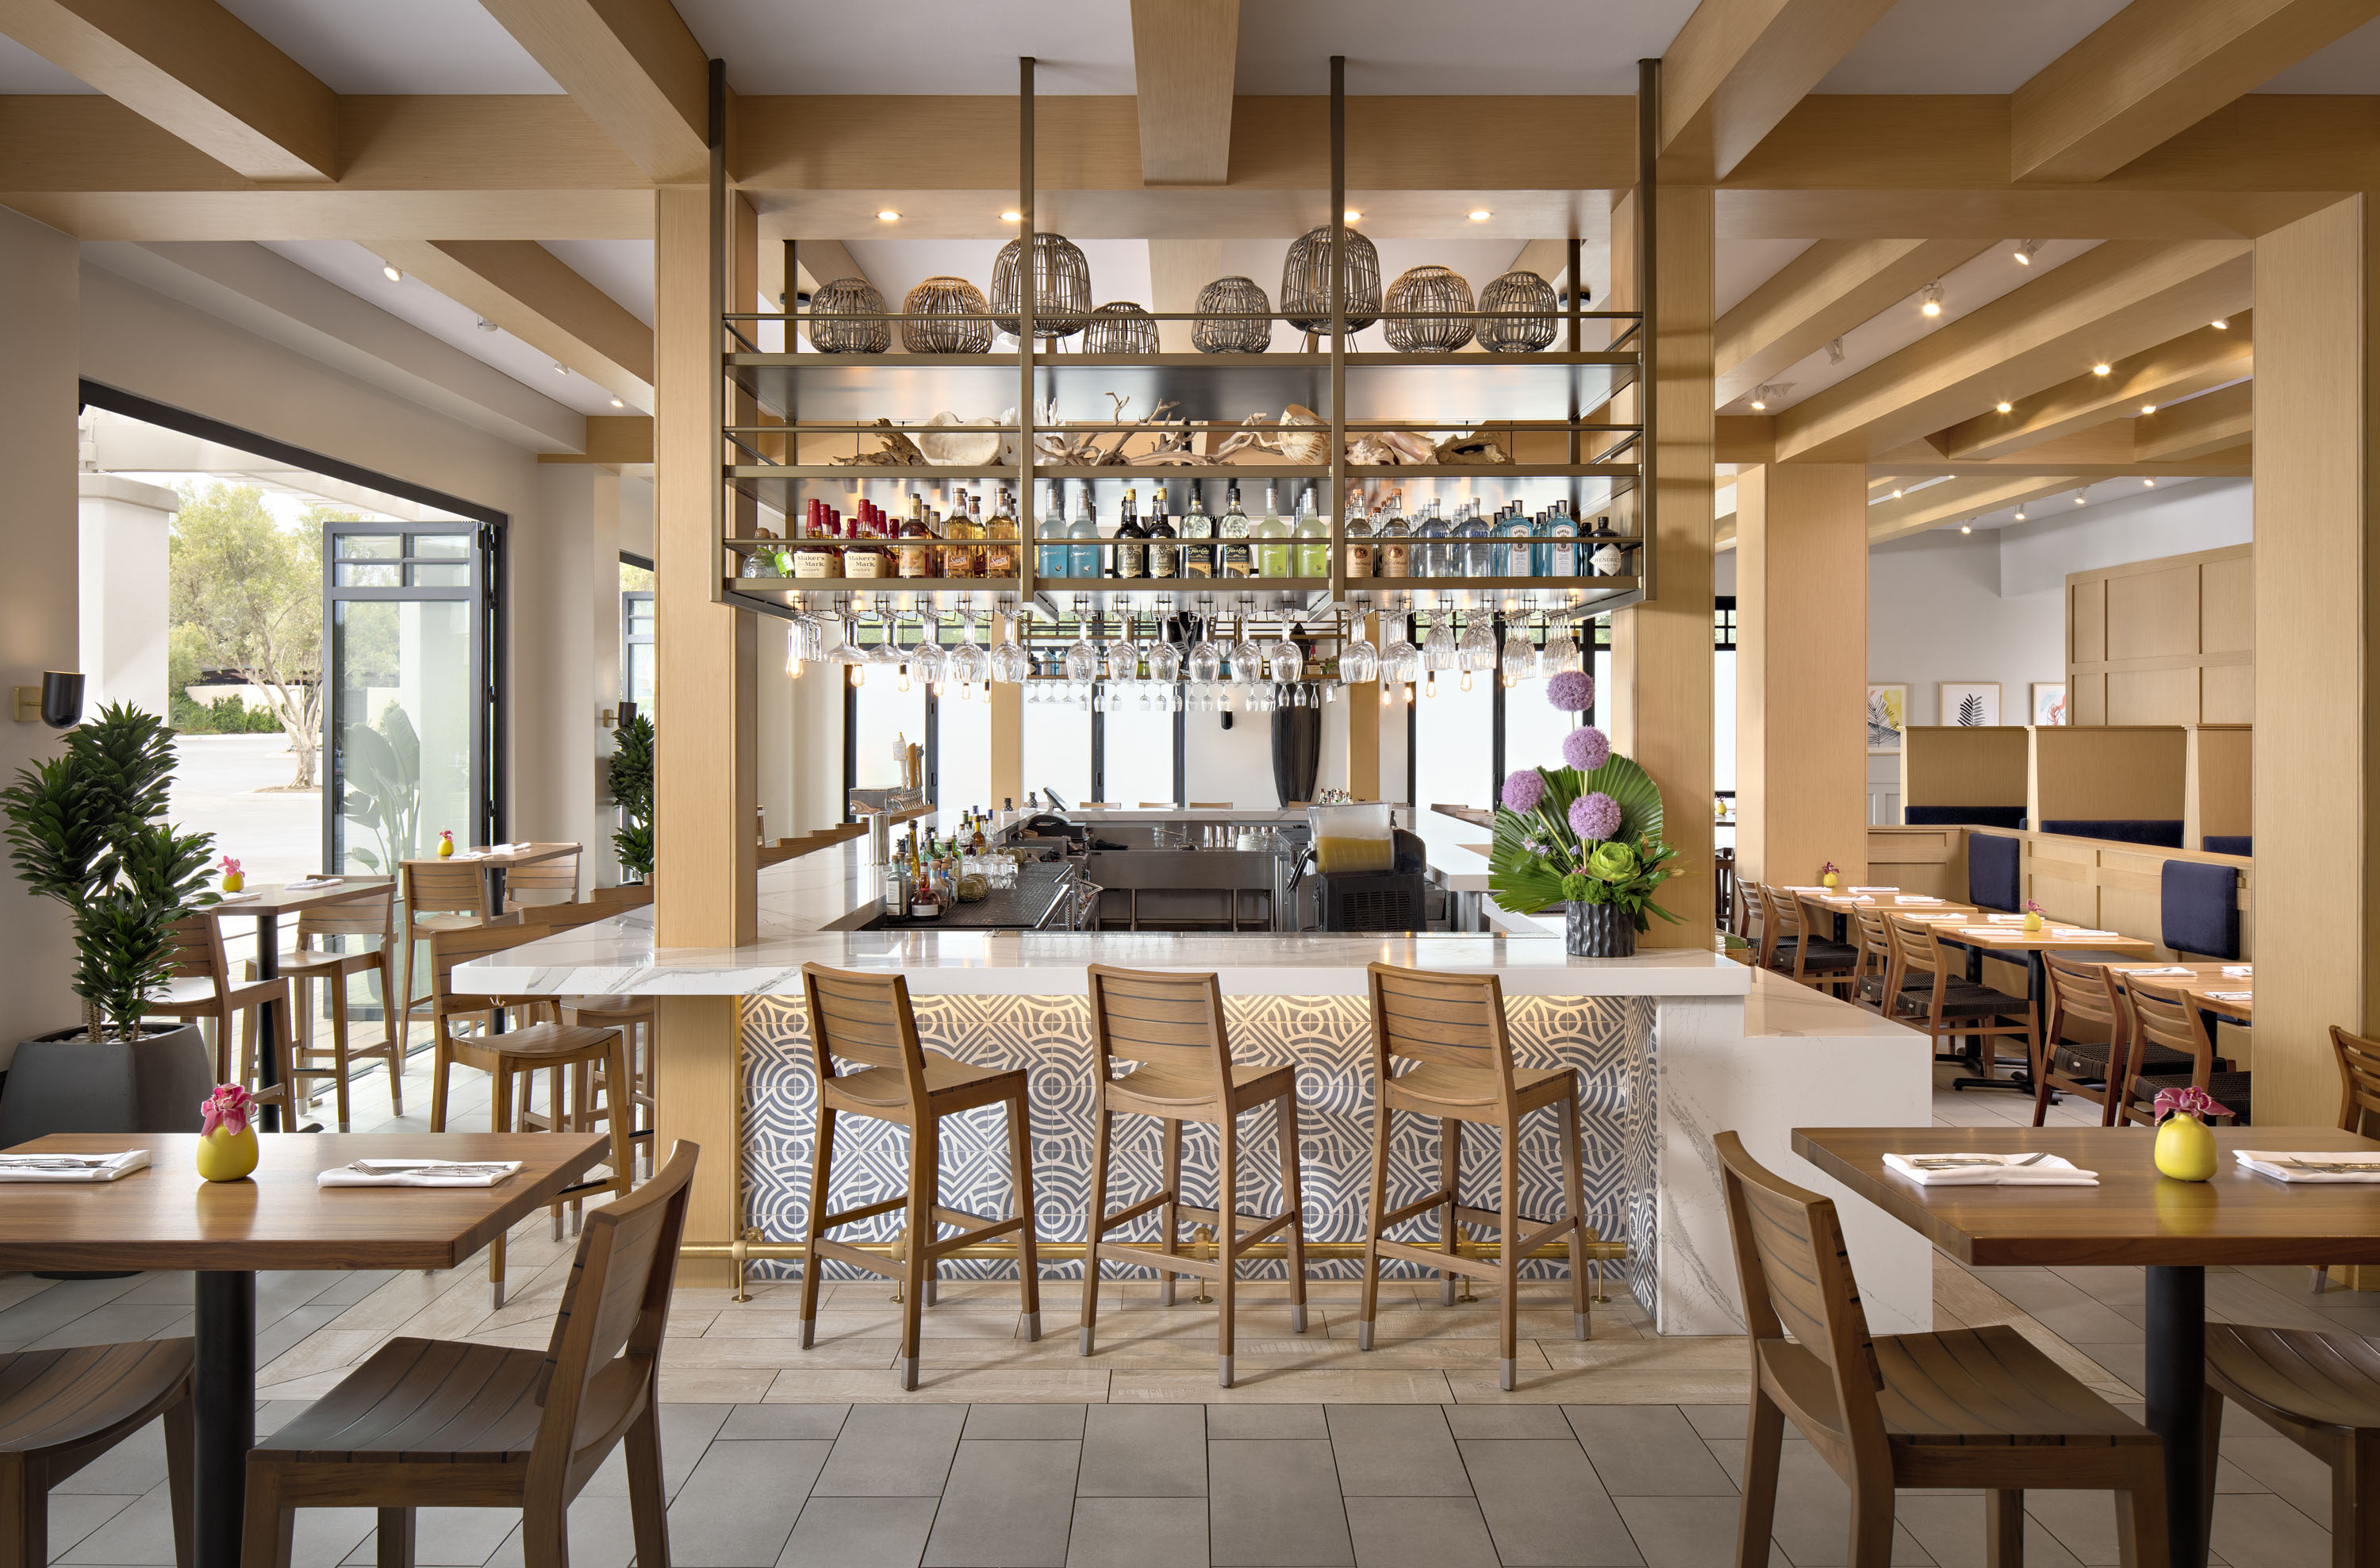 Tommy bahama returns fleming s tastes the future - Interior design school newport beach ...